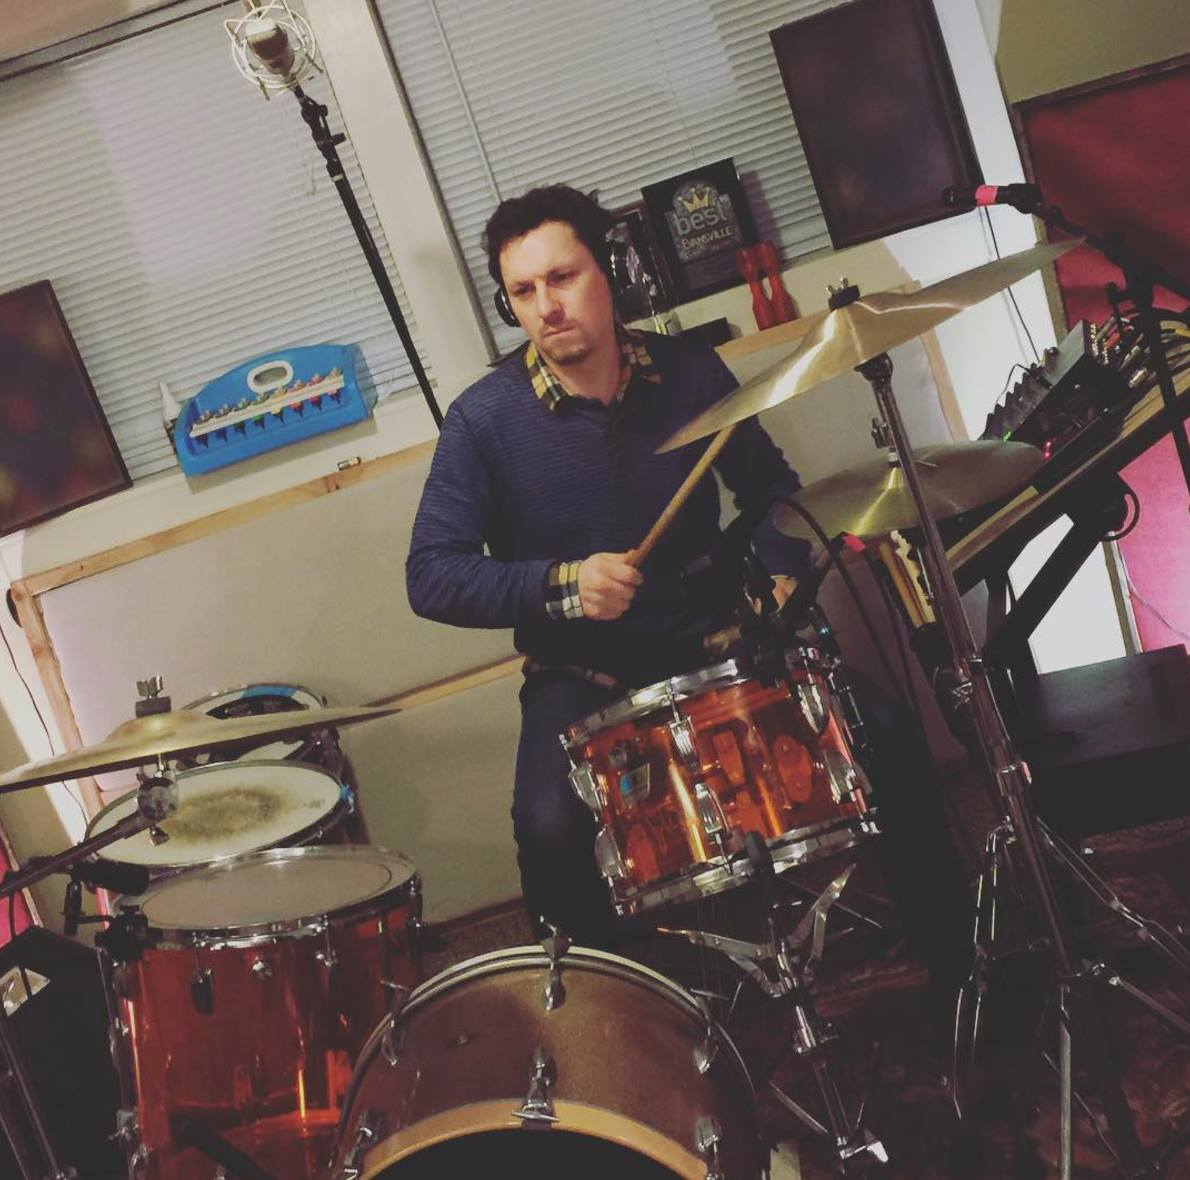 """11.22.2015 Here's a pic of Zach practicing the drums we were recording that day. Probably """"Everyone Will Leave and You"""""""